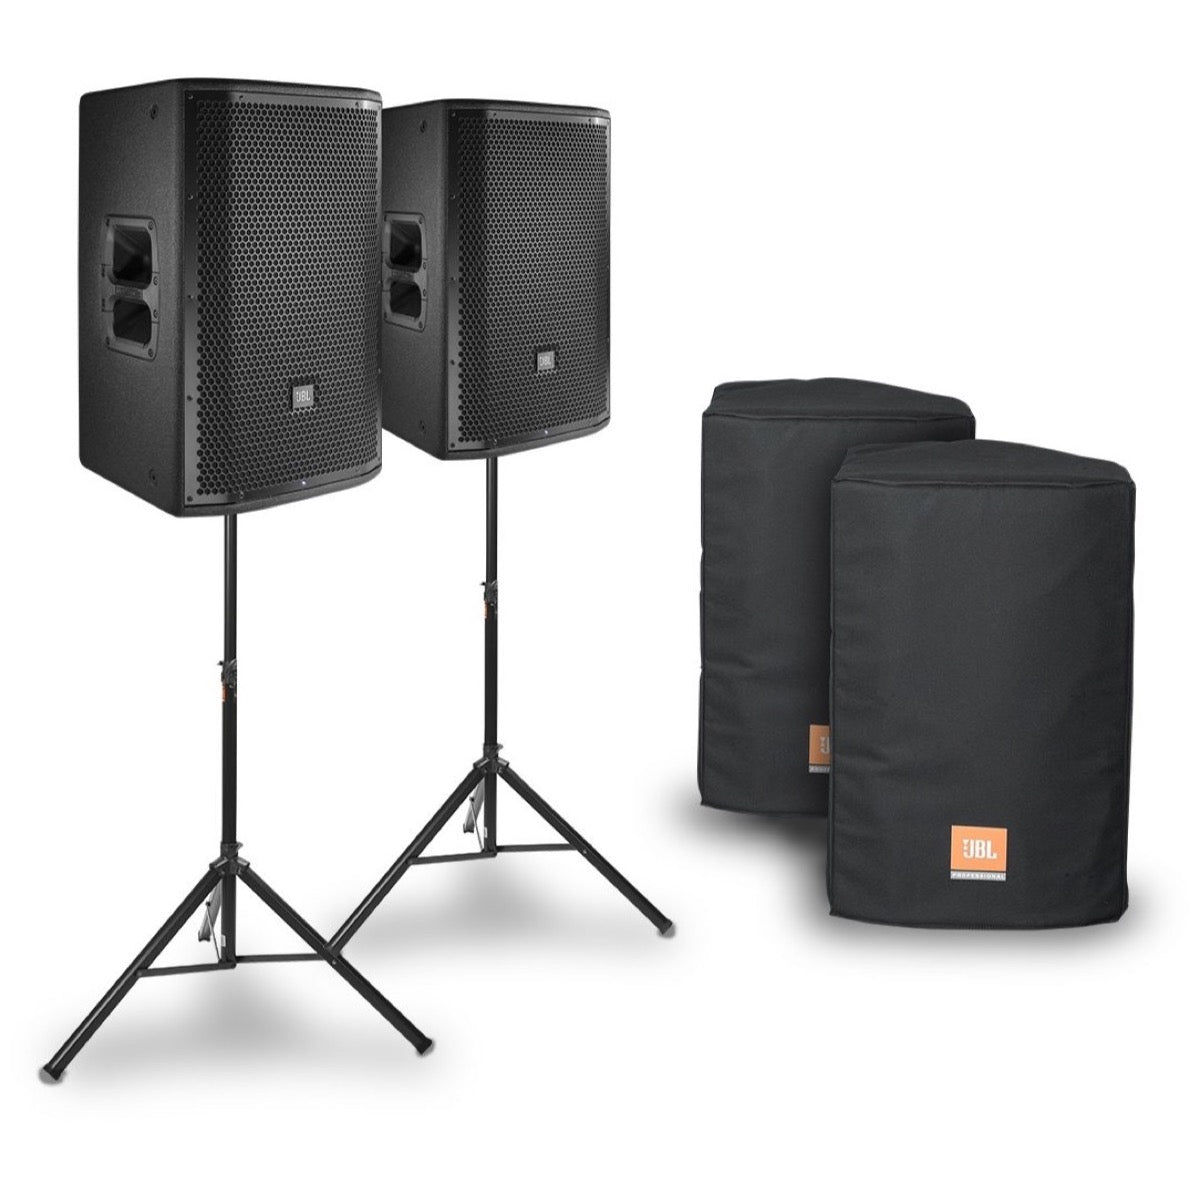 JBL PRX812 Powered Speaker (1500 Watts), Pair, with JBL Covers and Speaker Stands